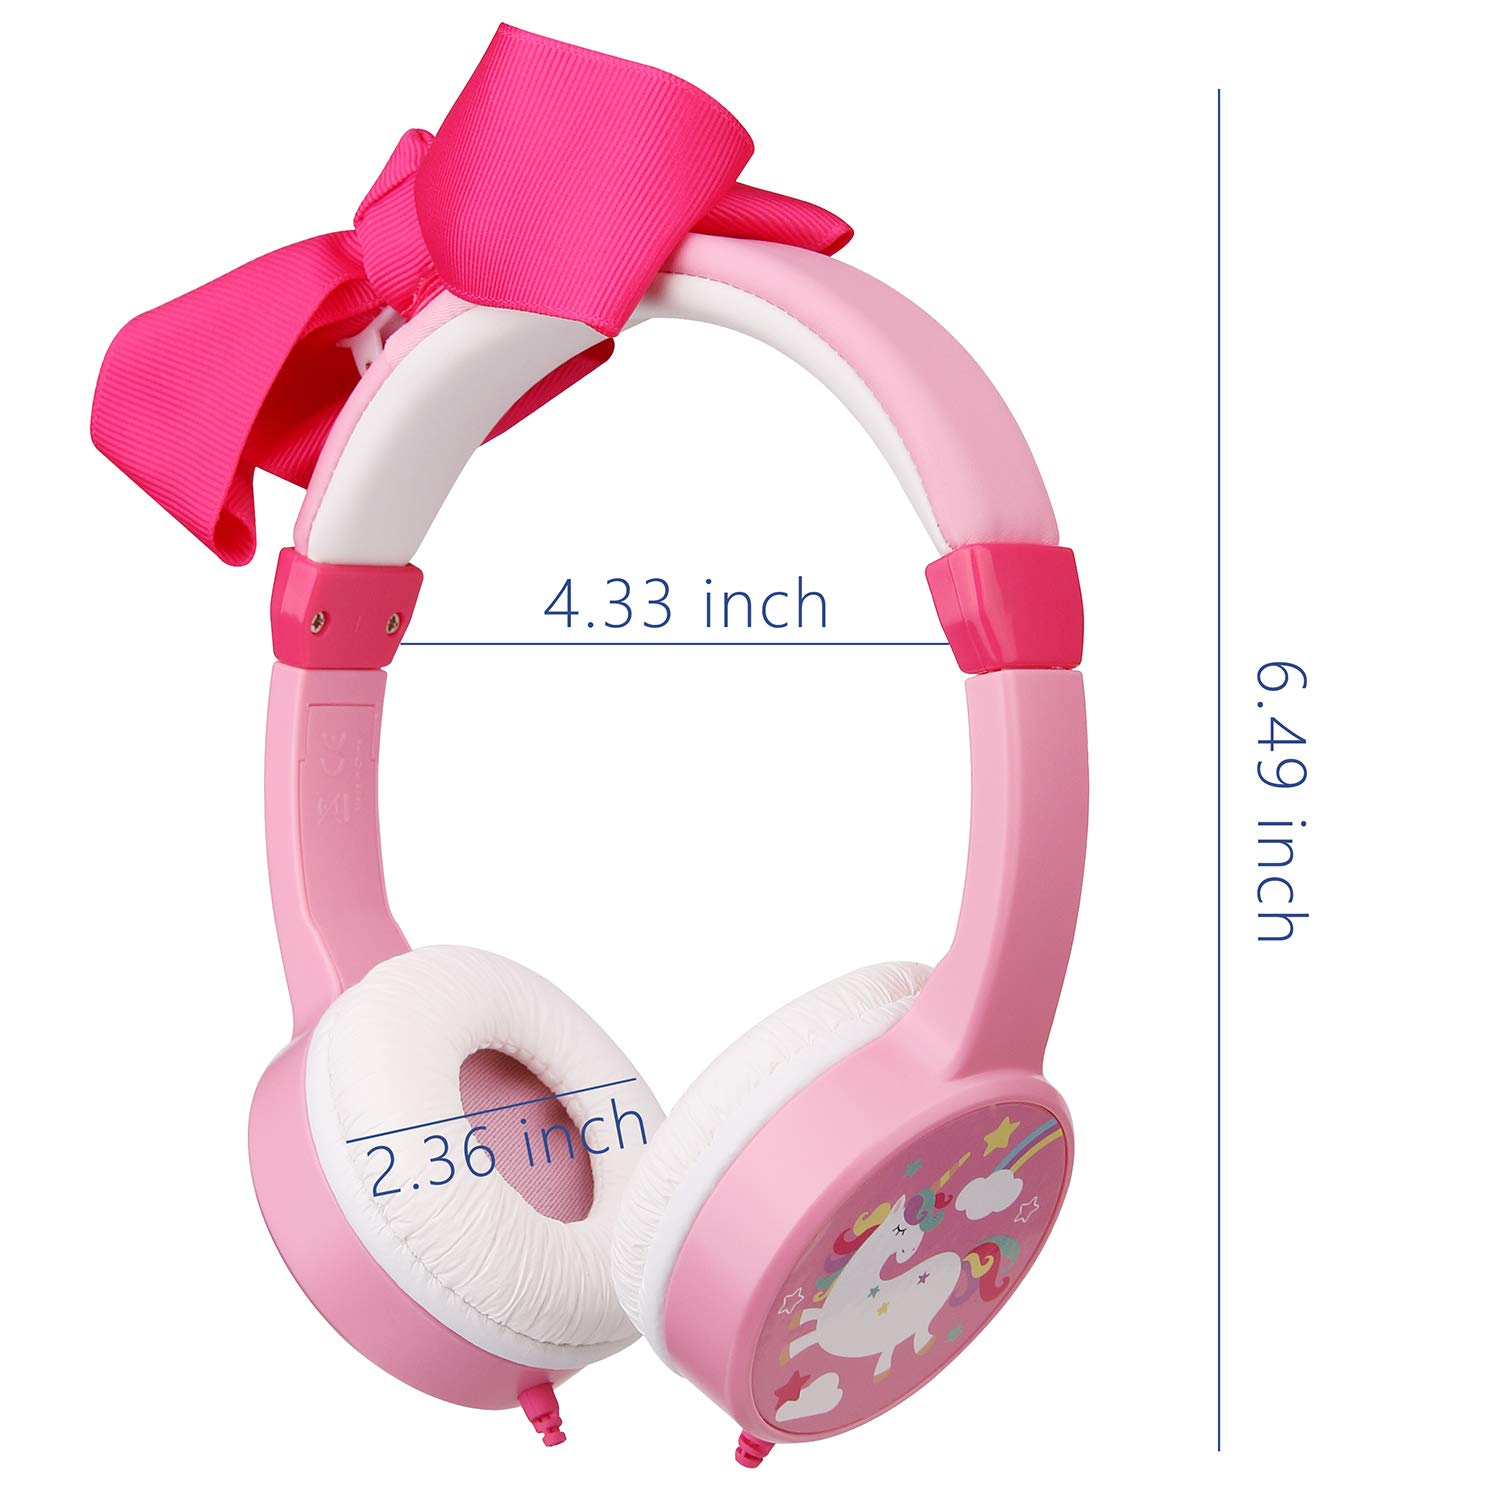 Girls Unicorn Headphones,Removable Bowknot Earphones with 85dB Volume Limited and 3.5mm Jack for iPad Cellphones Computer MP3/4 Kindle,Children Headset for School,Birthday Gifts (Bowknot) by JBUNION (Image #2)